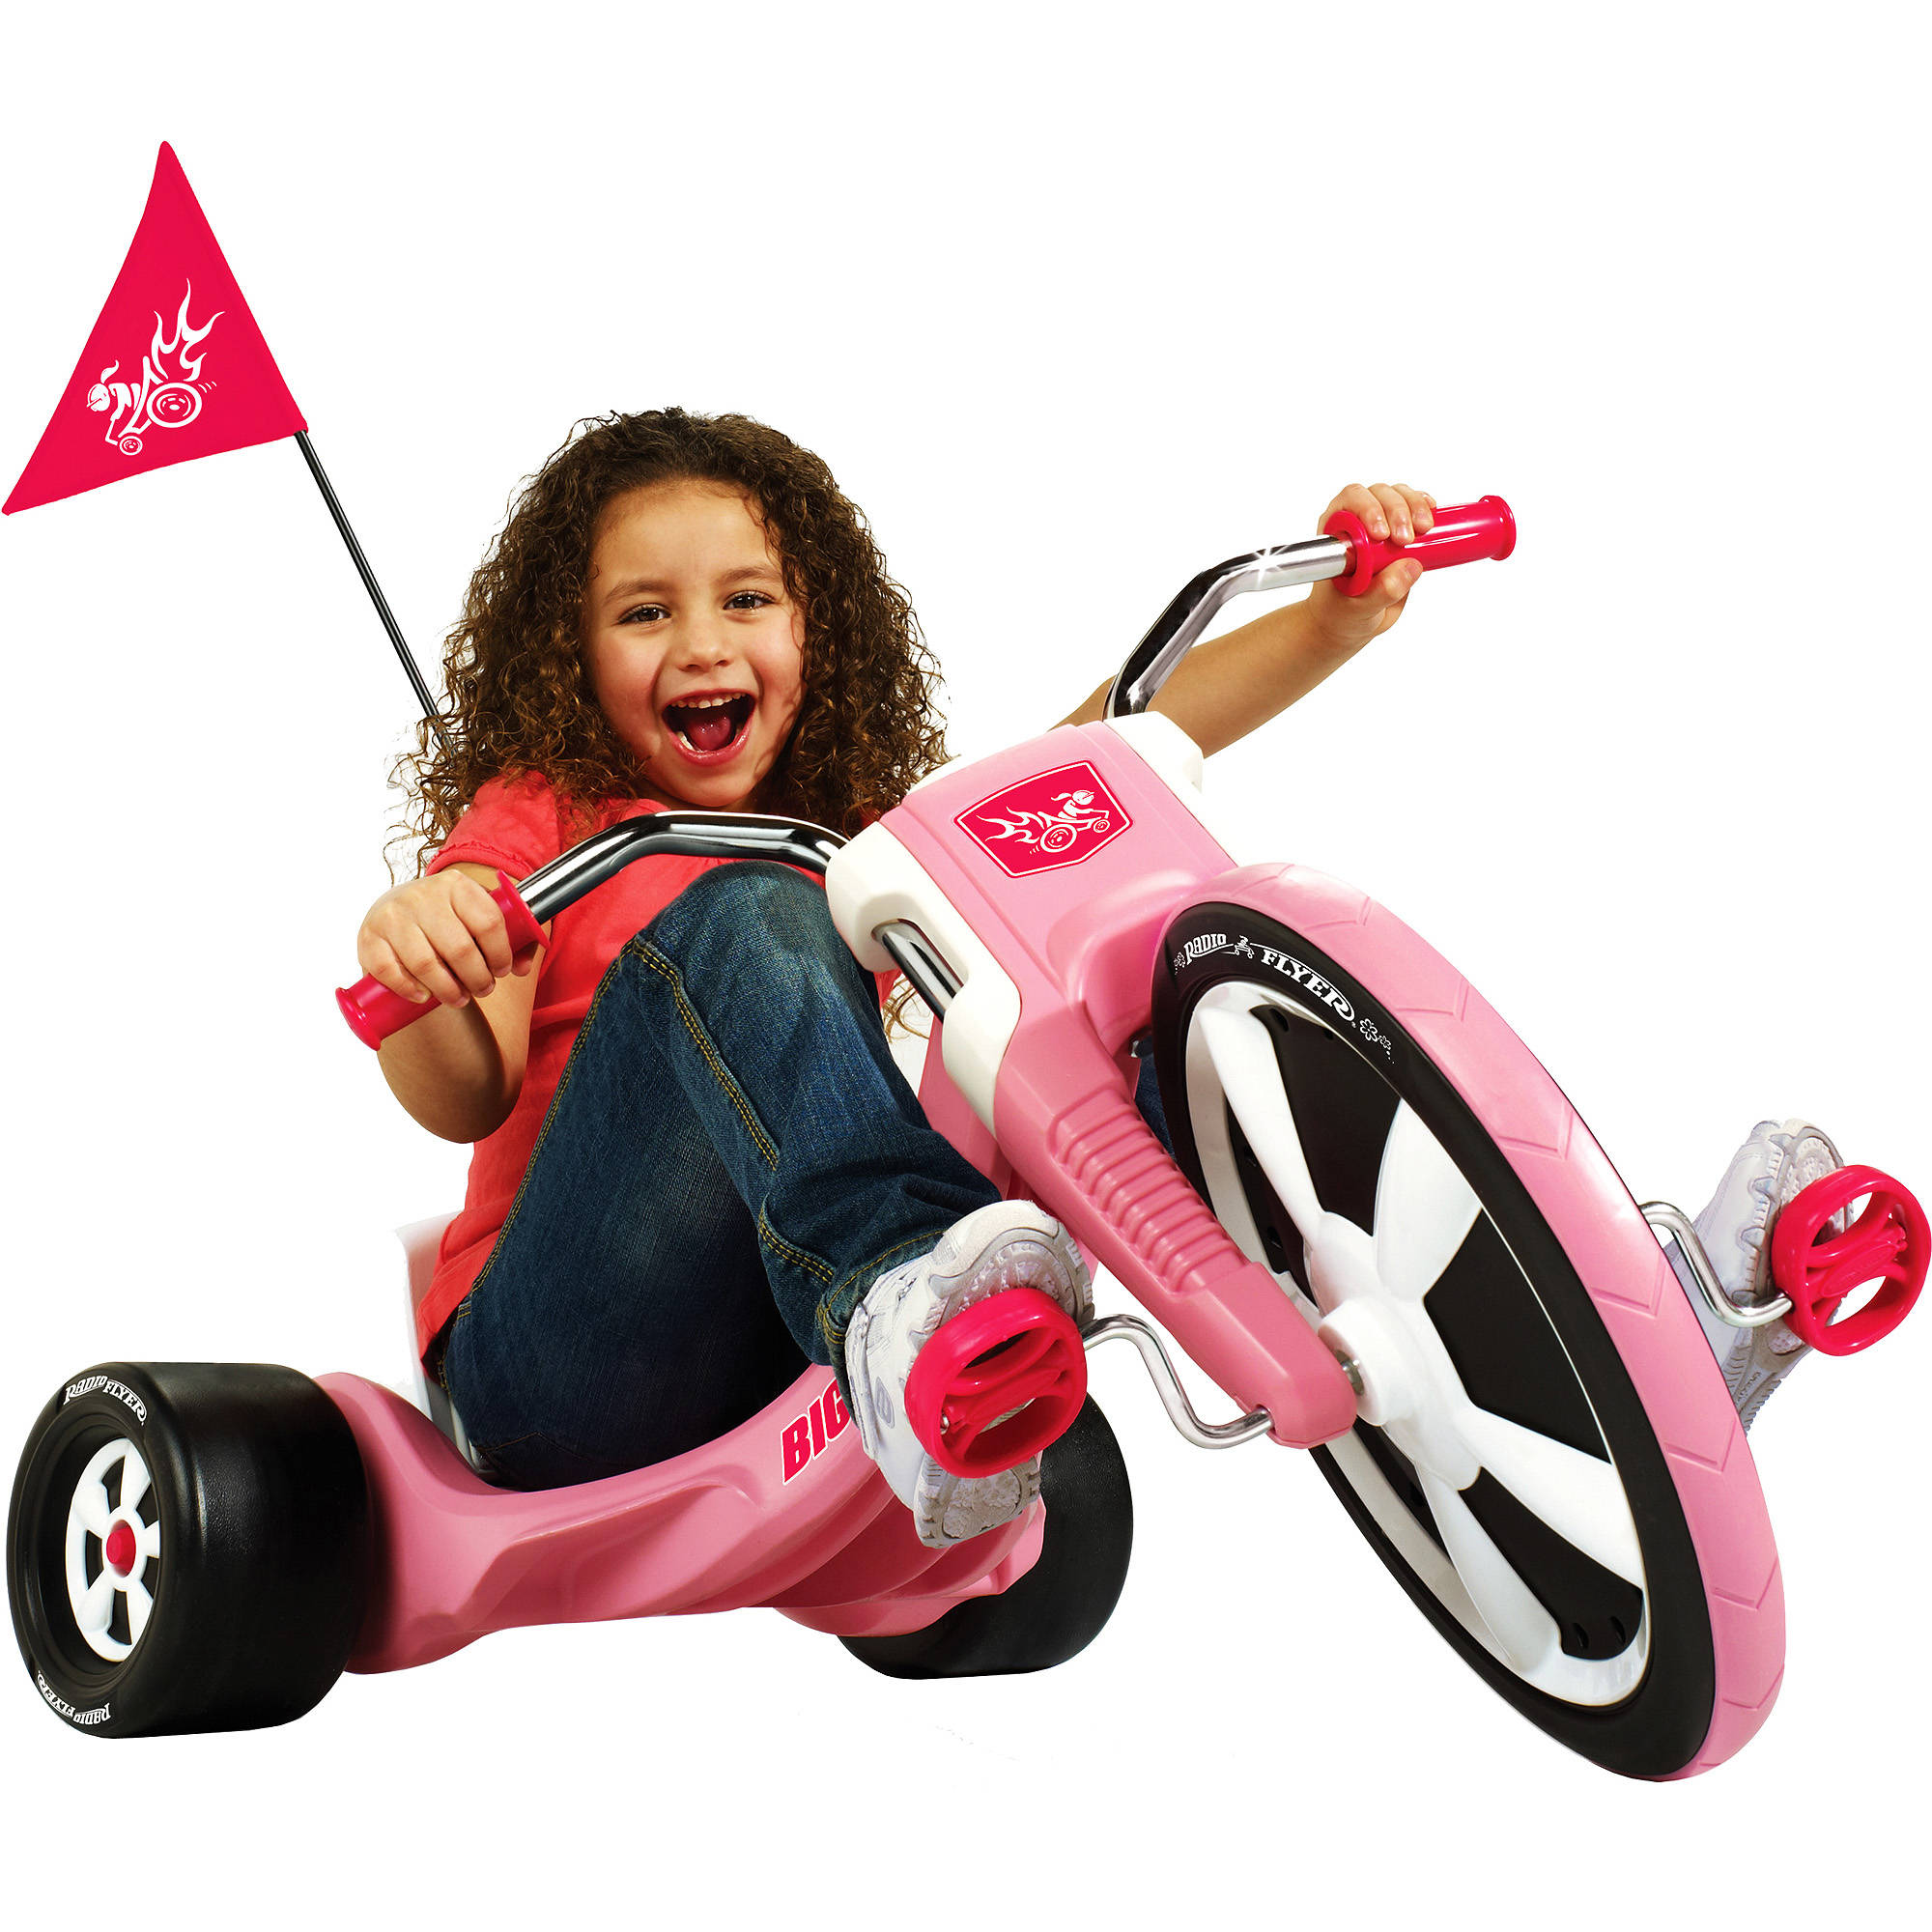 Radio Flyer Girl's Big Flyer